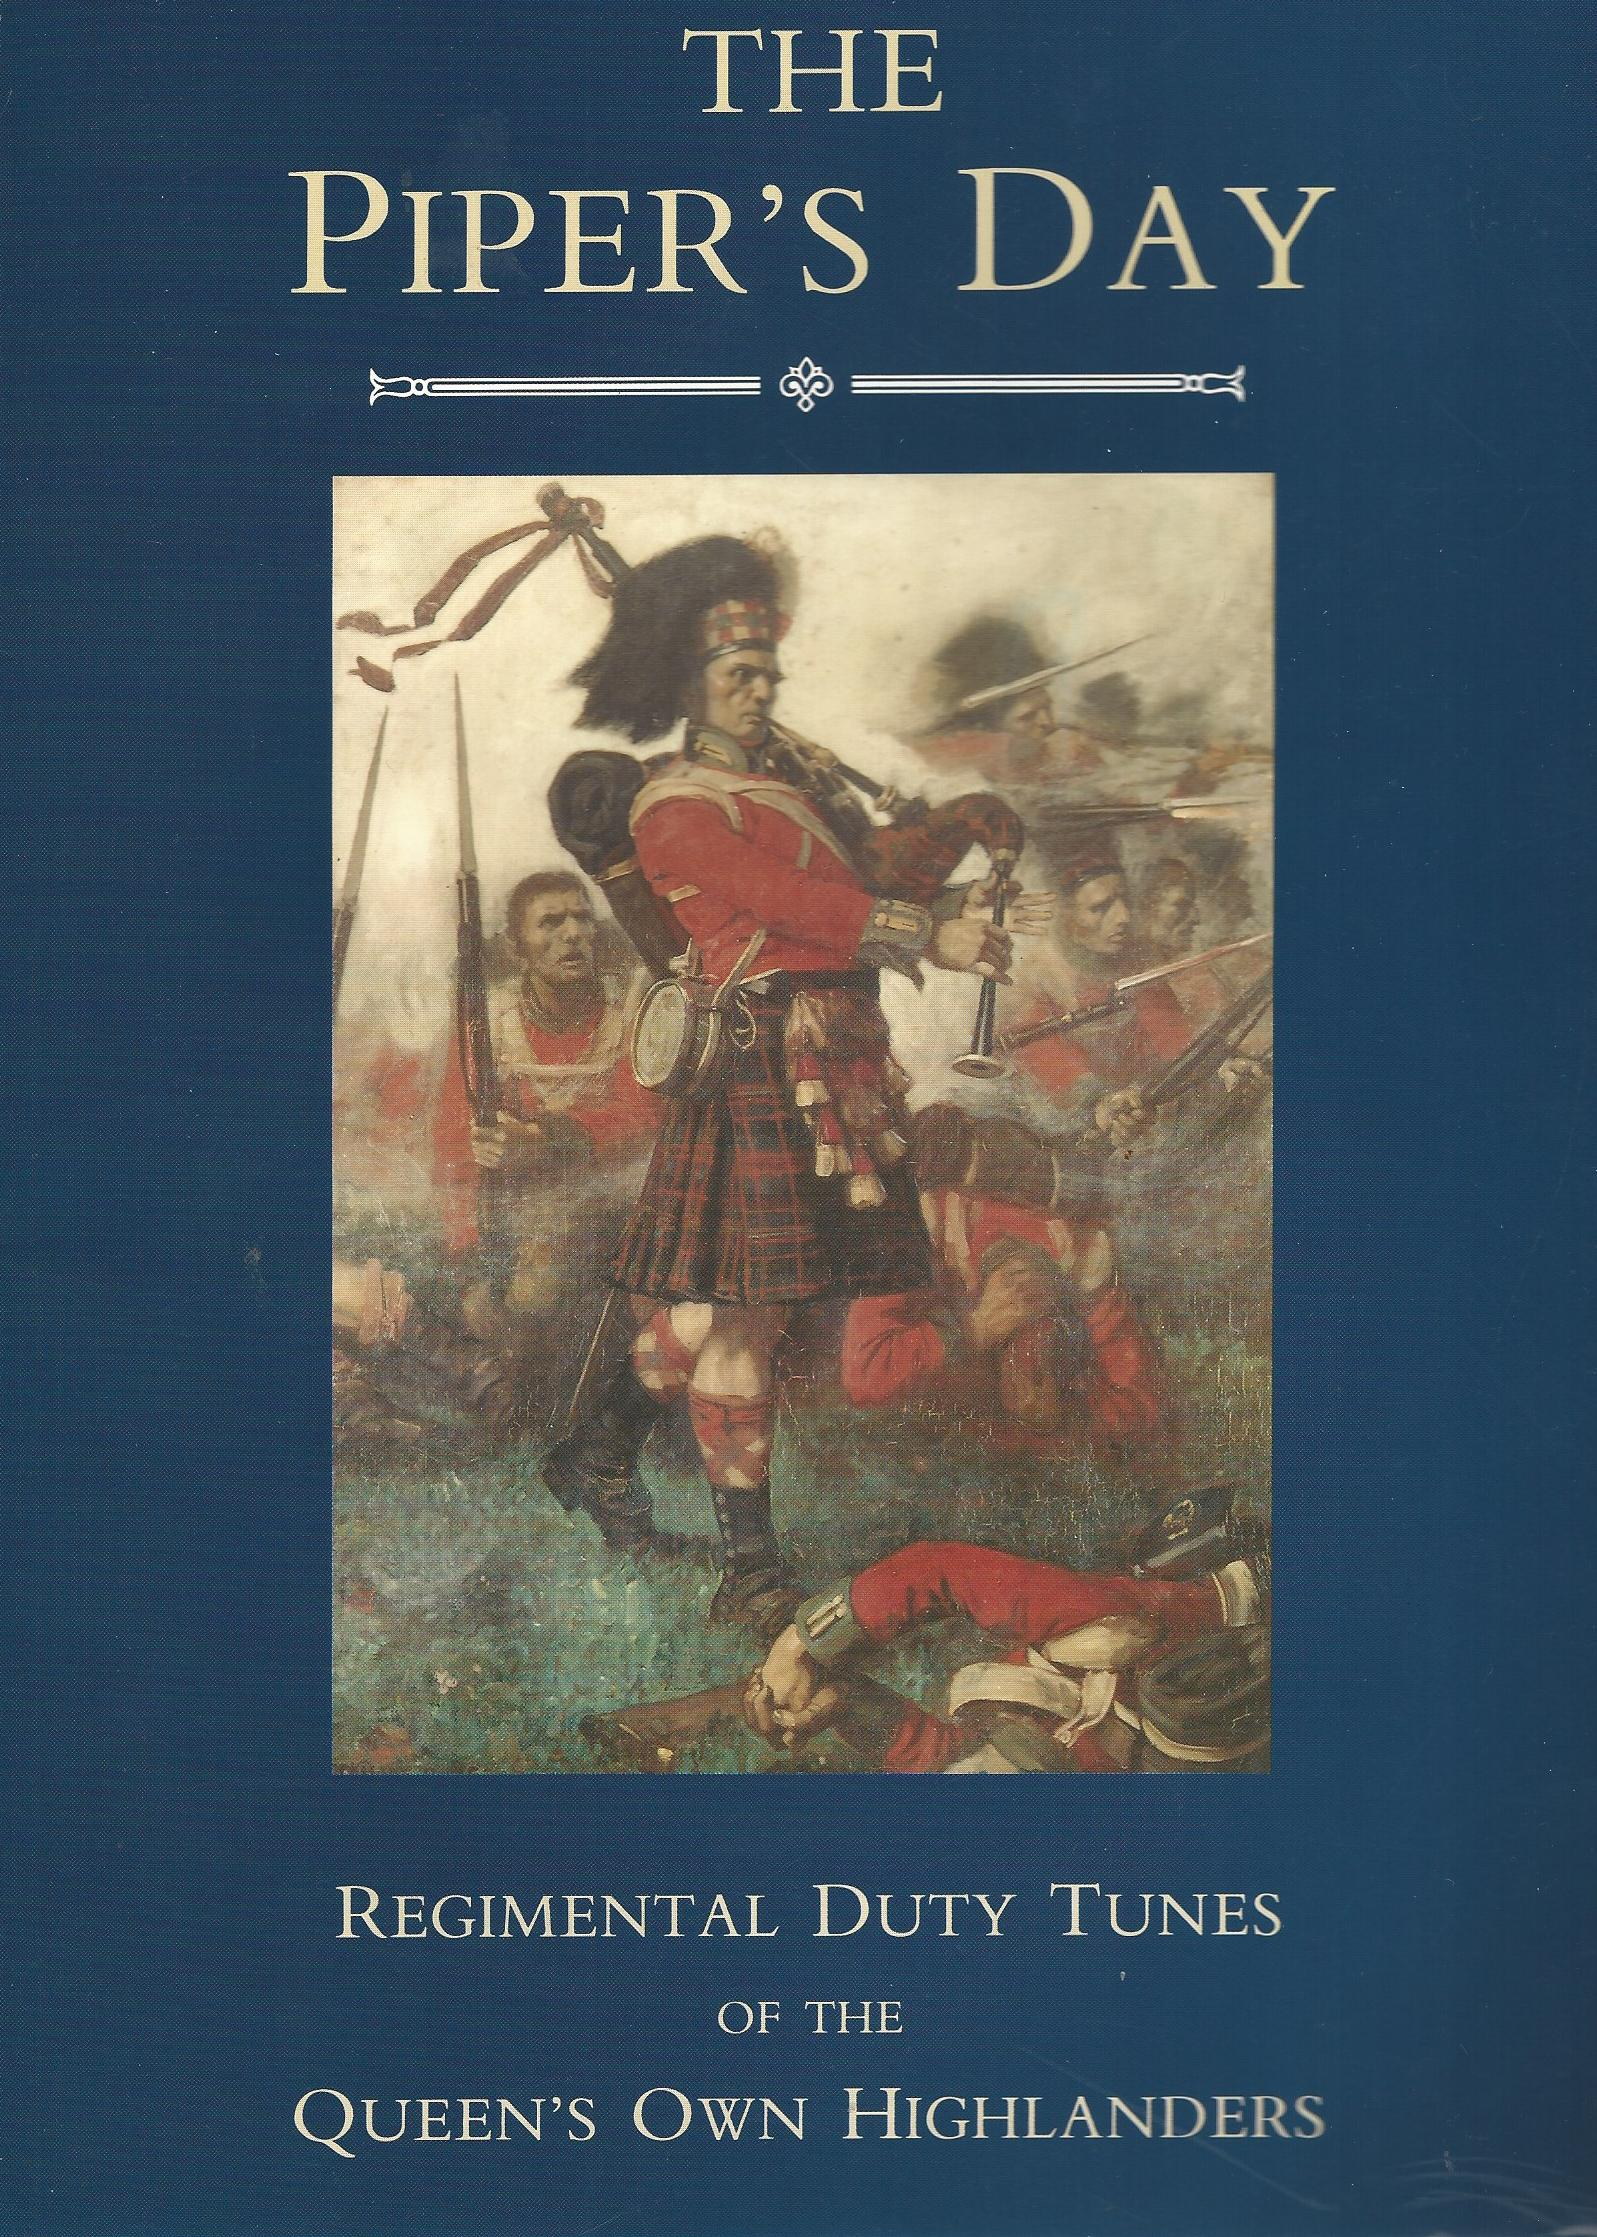 Image for The Piper's Day - Regimental Duty Tunes of the Queen's Own Highlanders.